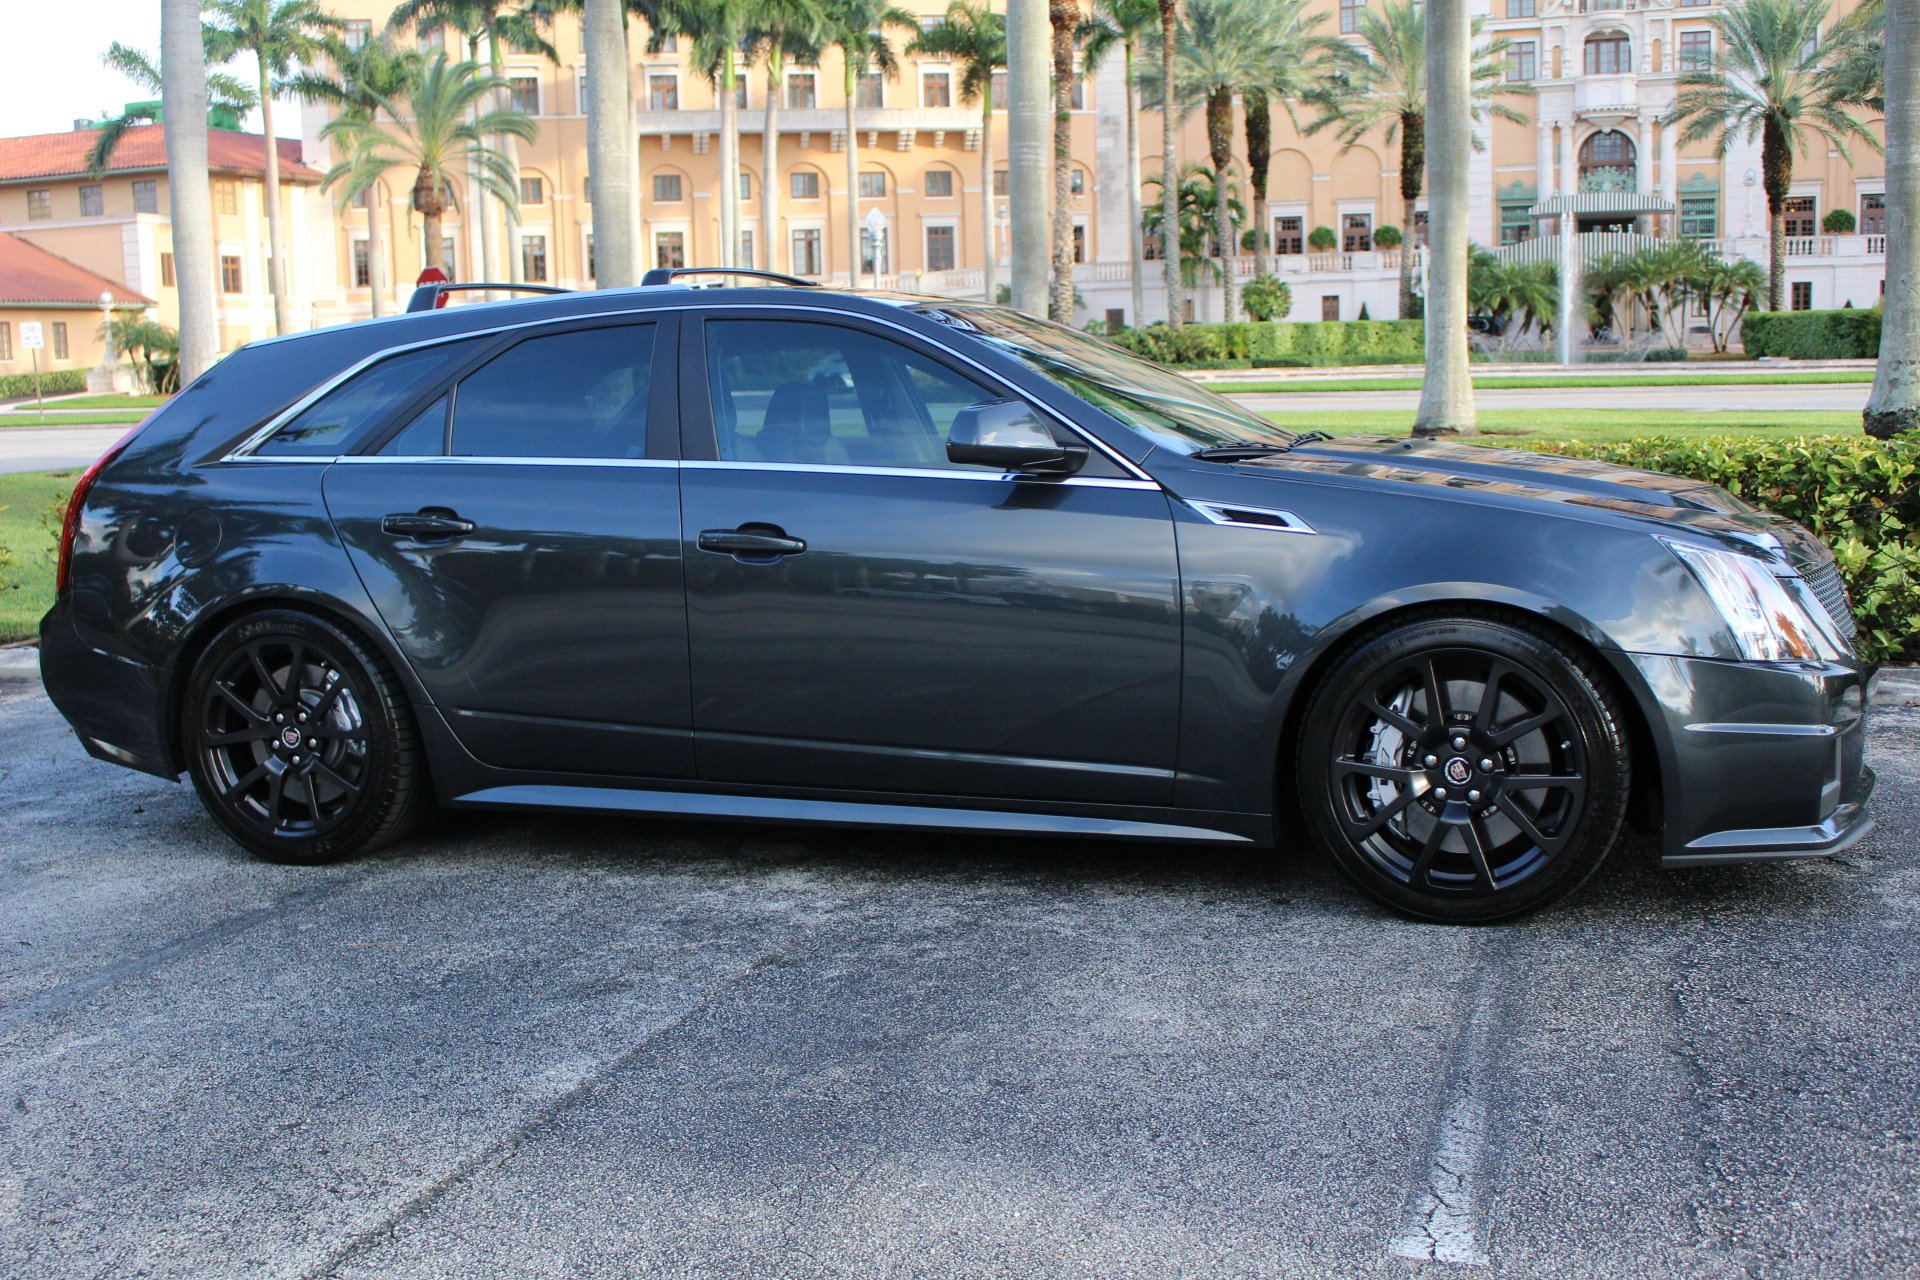 Used 2014 Cadillac CTS-V for sale Sold at The Gables Sports Cars in Miami FL 33146 3